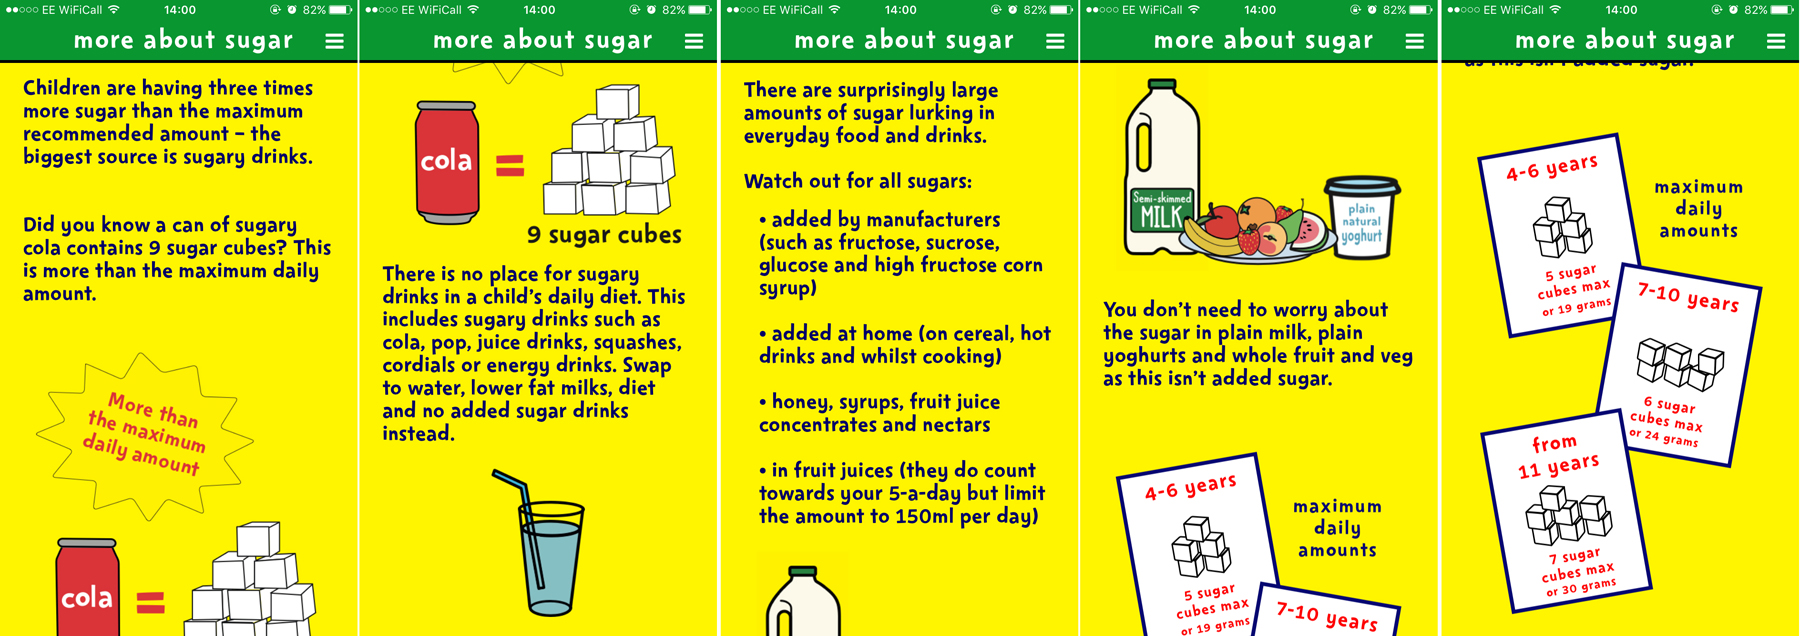 More-about-sugar